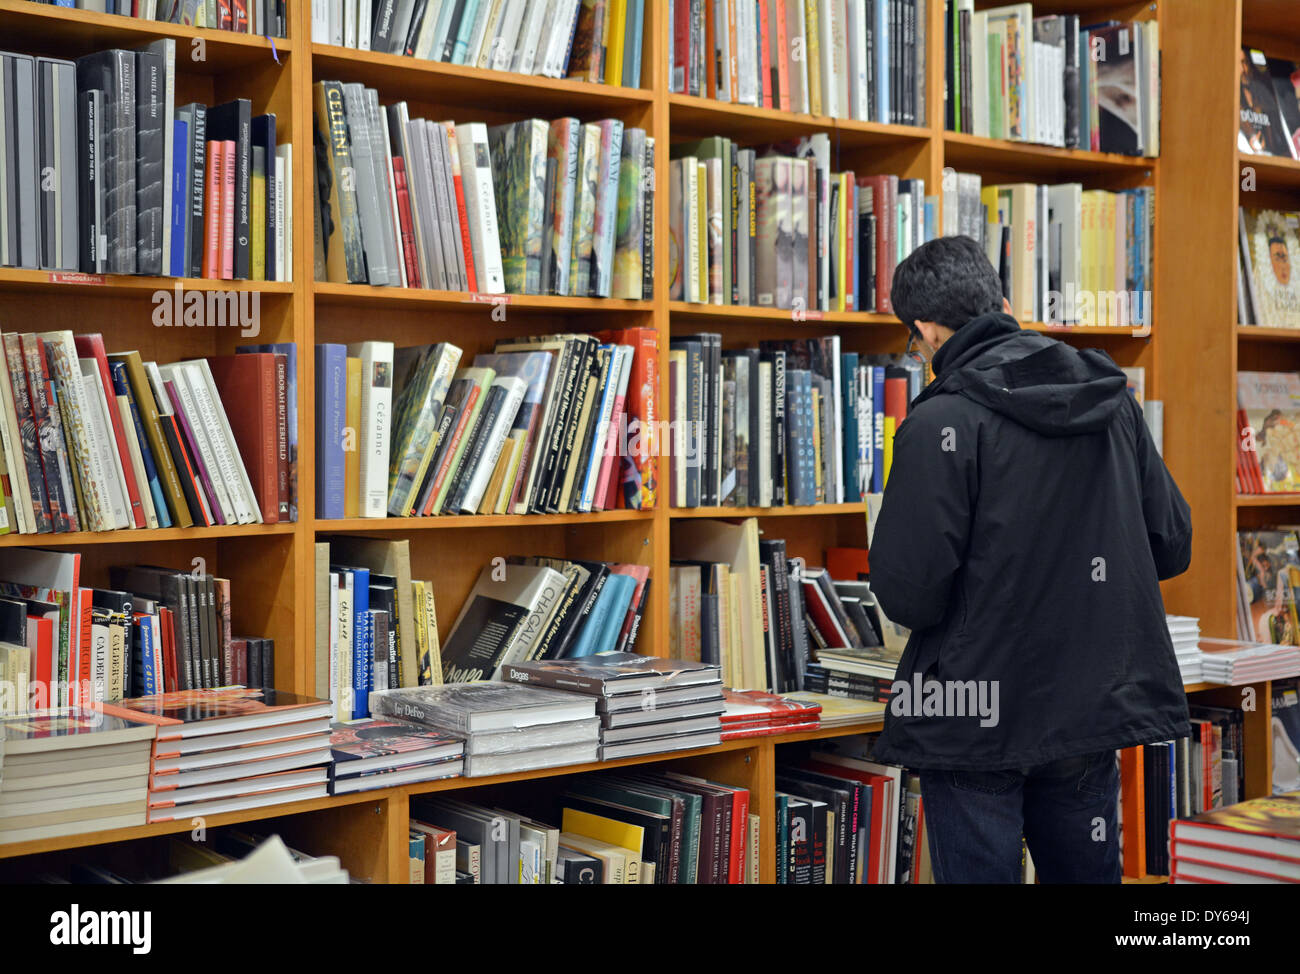 A man in a coat shopping for books at the Strand Bookstore on Broadway in Greenwich Village, Manhattan, NYC. - Stock Image